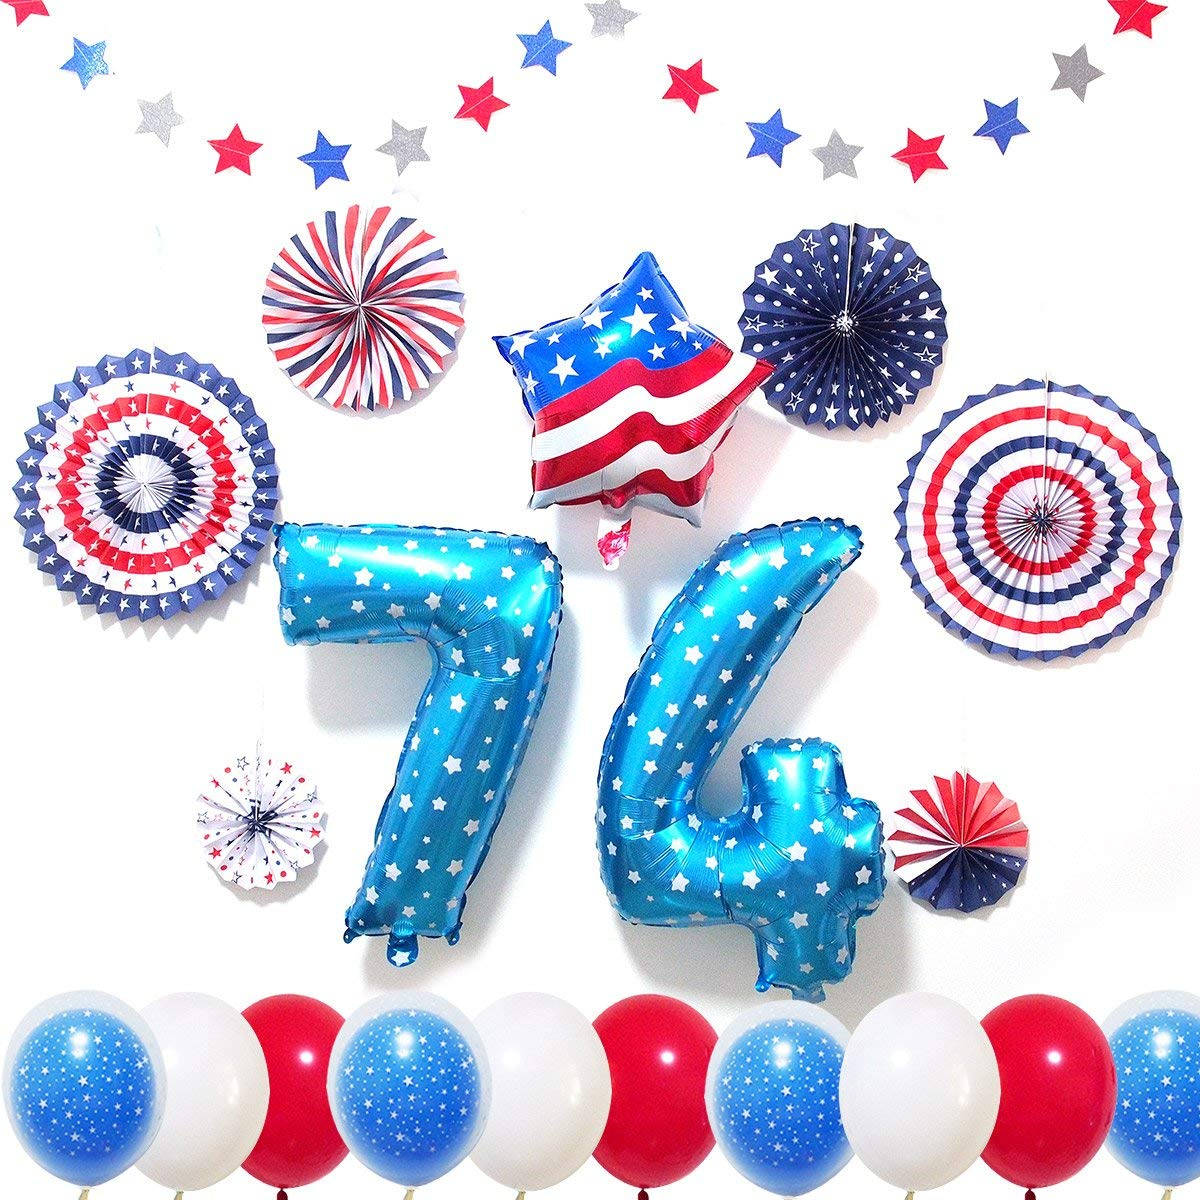 "4th of July Decorations Set, American Flag Element decorations - Patriotic Supplies - Including 13 Red White Blue Foil and Latex Balloons, 6 Paper Fans and 2 Strands of 75"" Glittering Star Streamers"